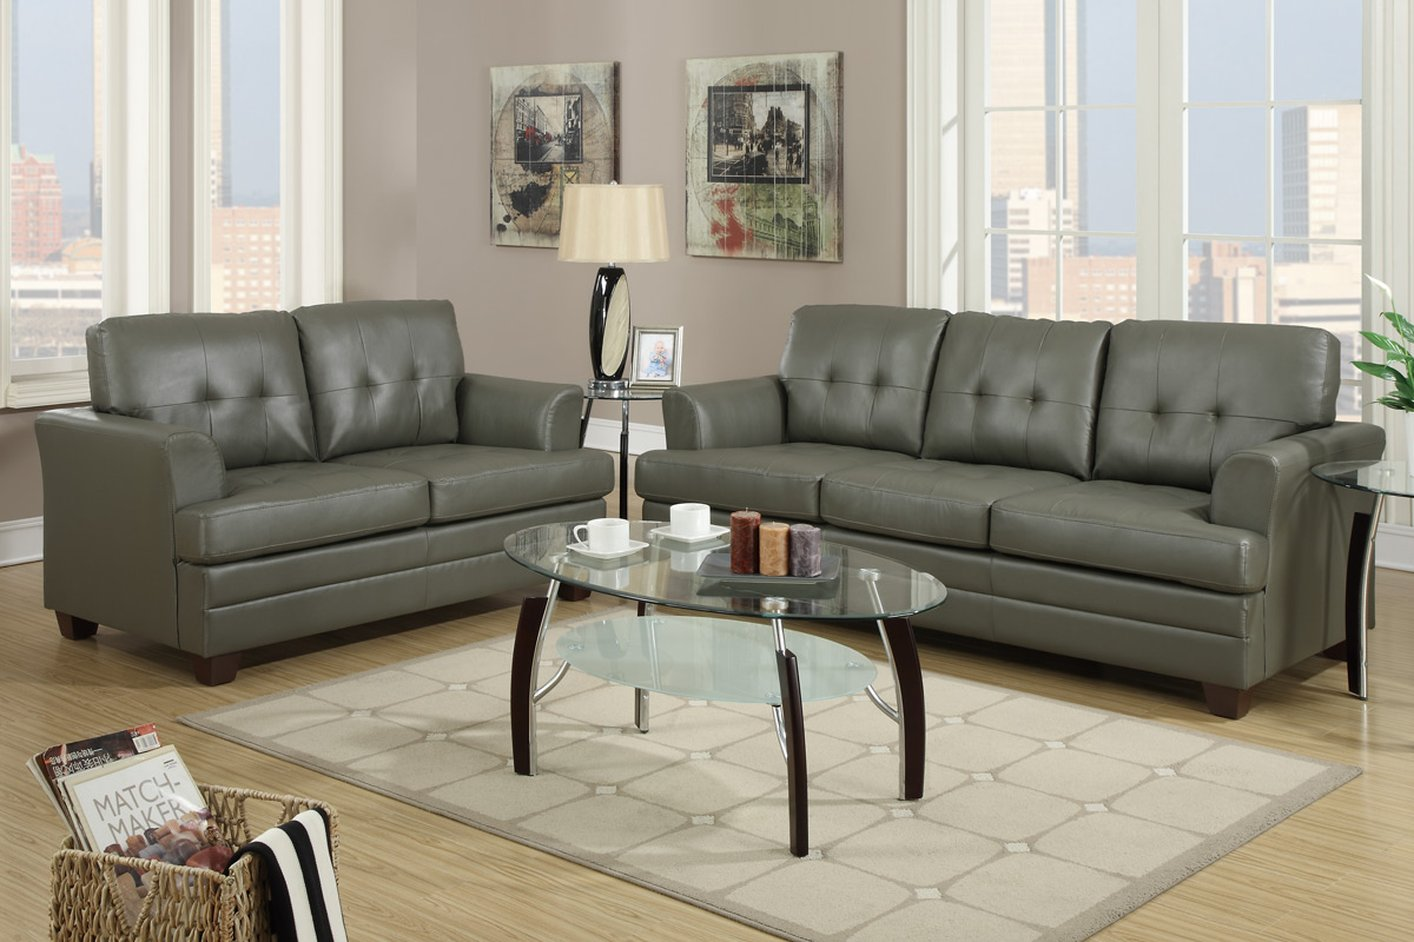 Best Leather Sofa Loveseat 23 About Remodel Modern Sofa Inspiration with Leather Sofa Loveseat